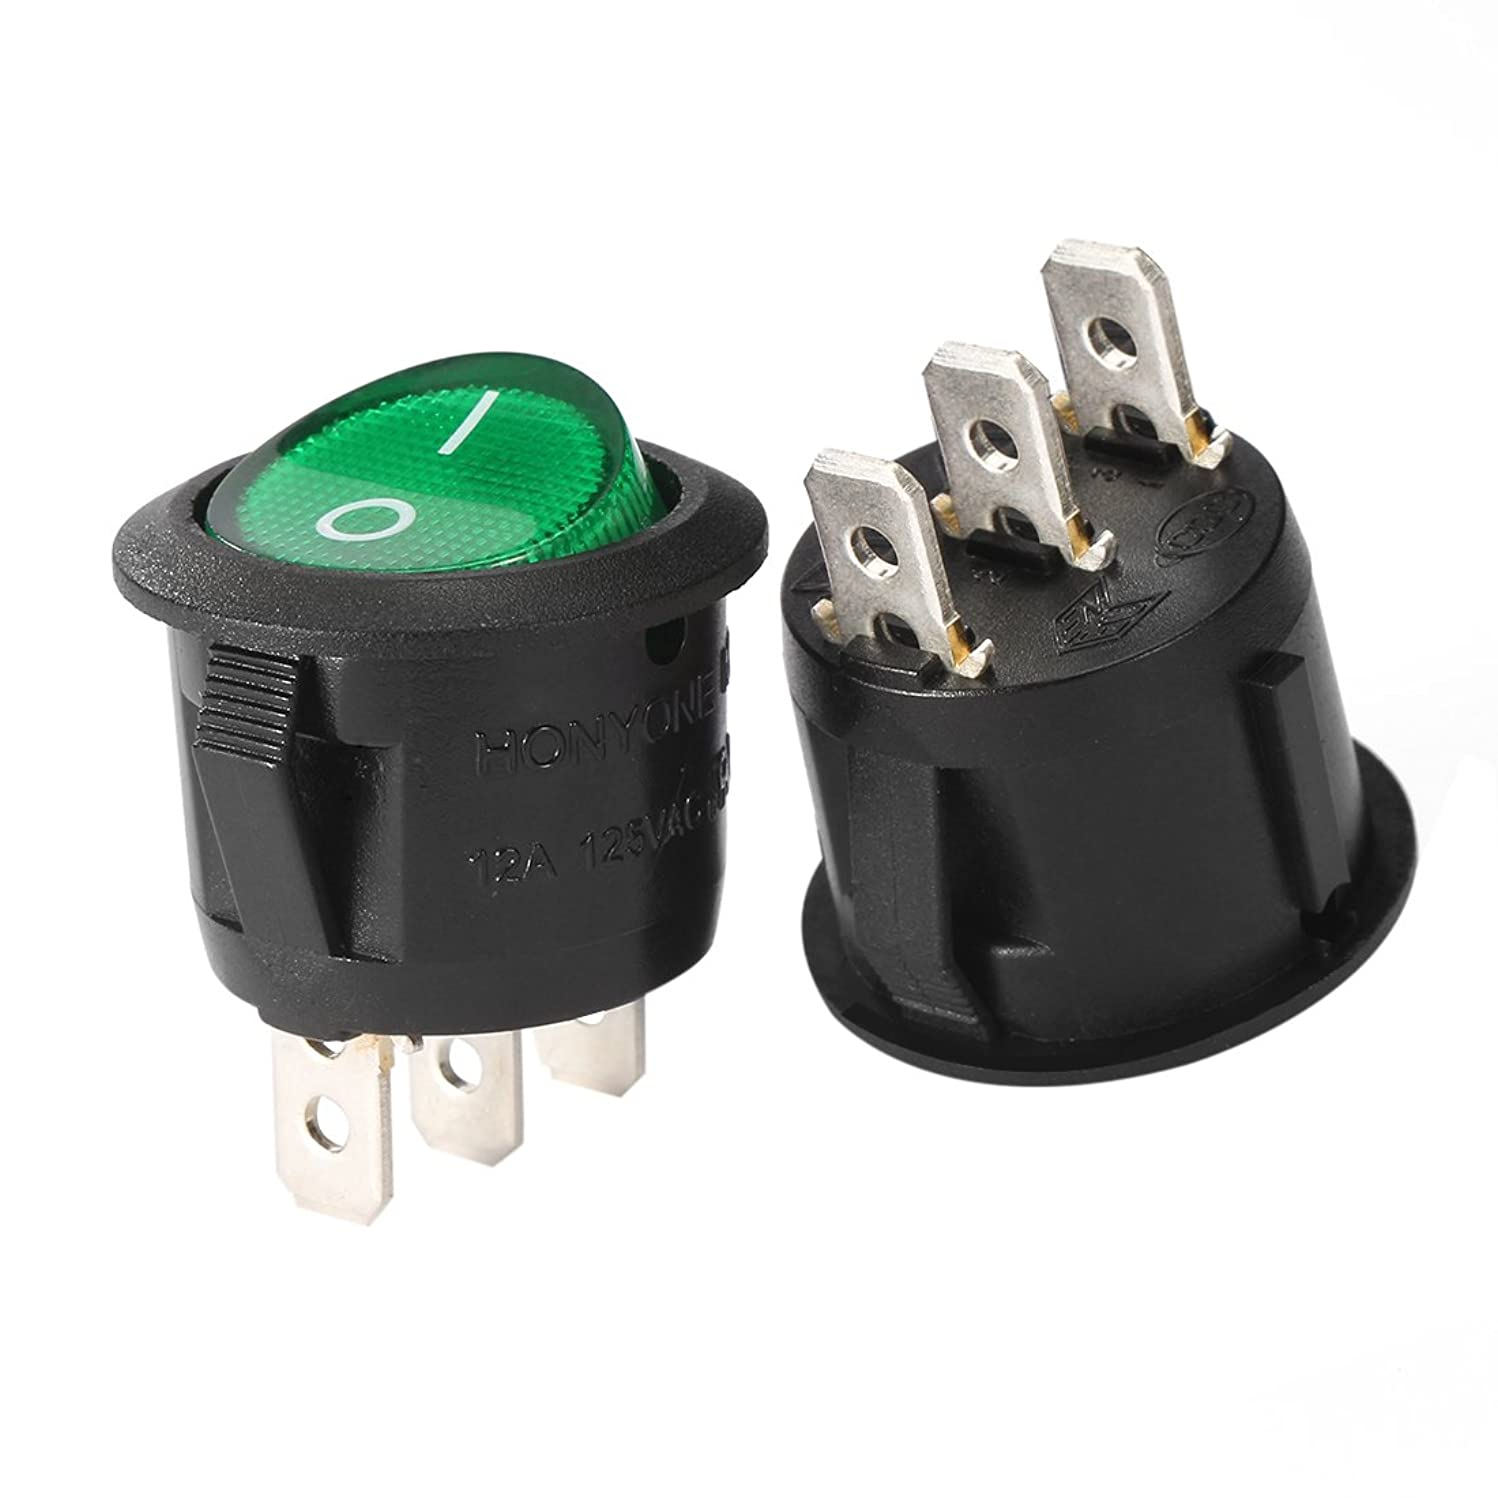 uxcell 5Pcs Illuminated Green Lamp On/Off 3 Terminal SPST 2 Position I/O Round Button Toggle Mini Boat Rocker Switch AC 250V/10A 125V/12A